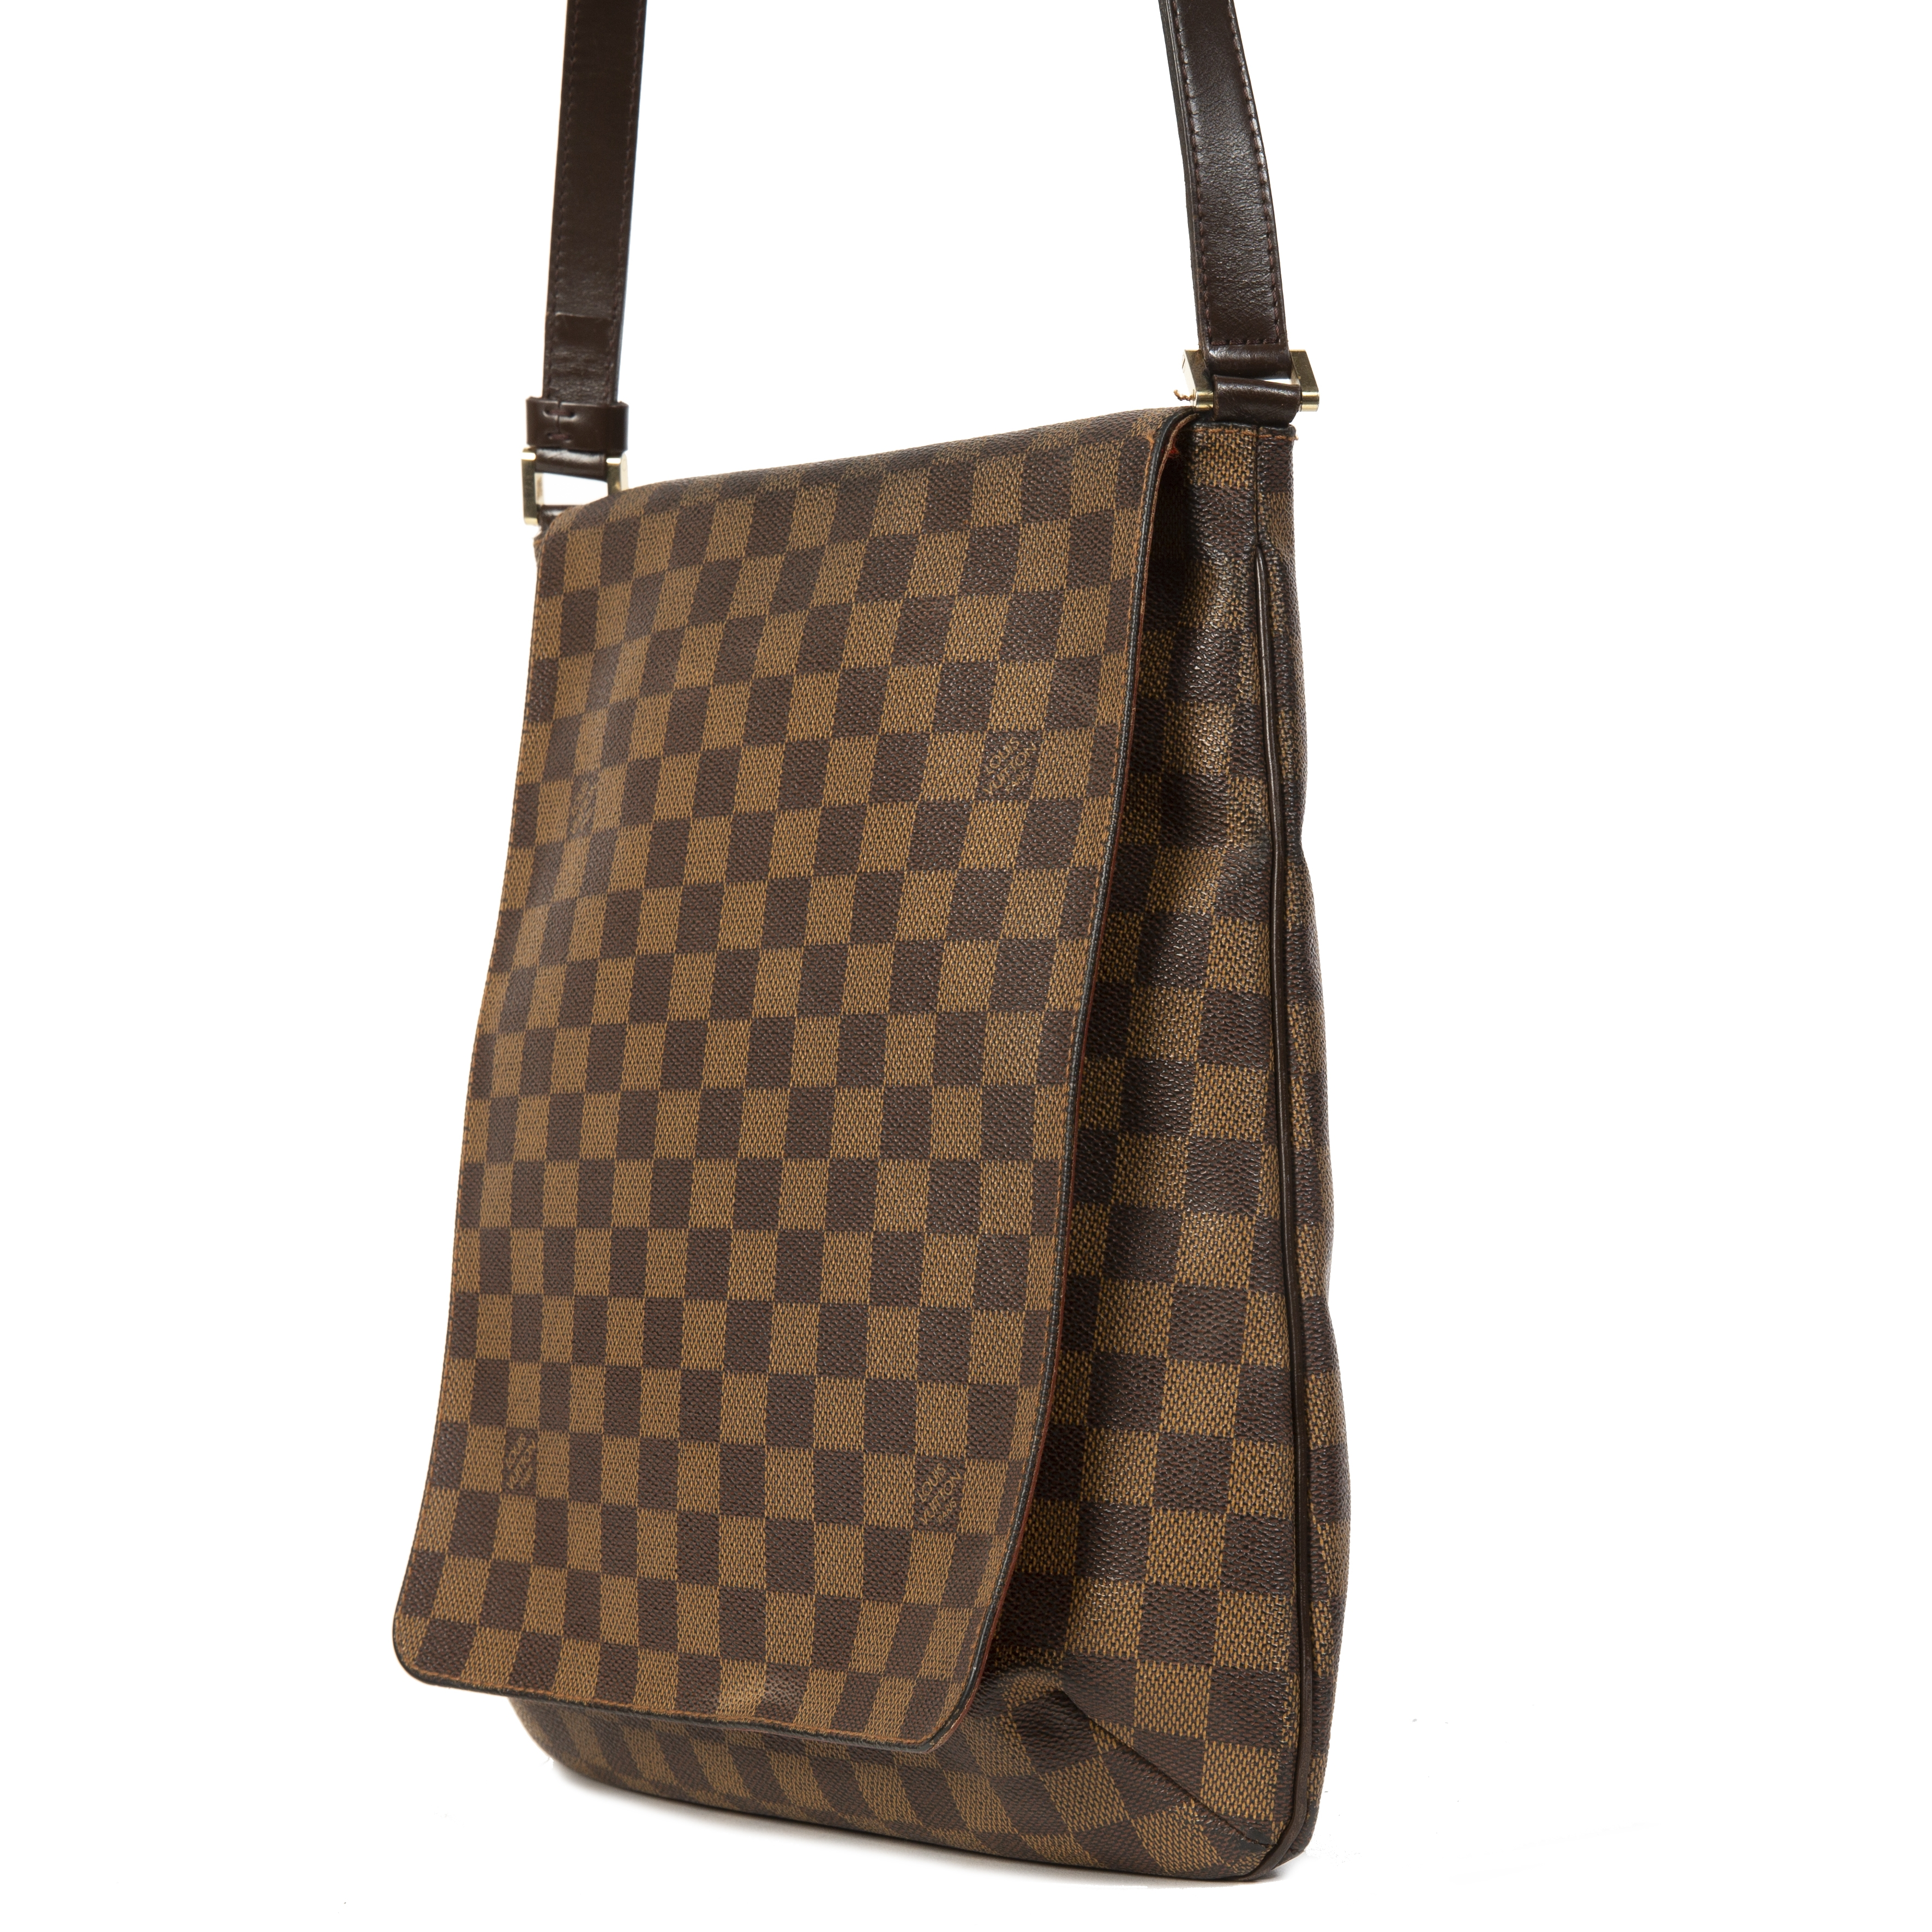 Welp Labellov Buy authentic vintage Louis Vuitton online with Labellov IC-89